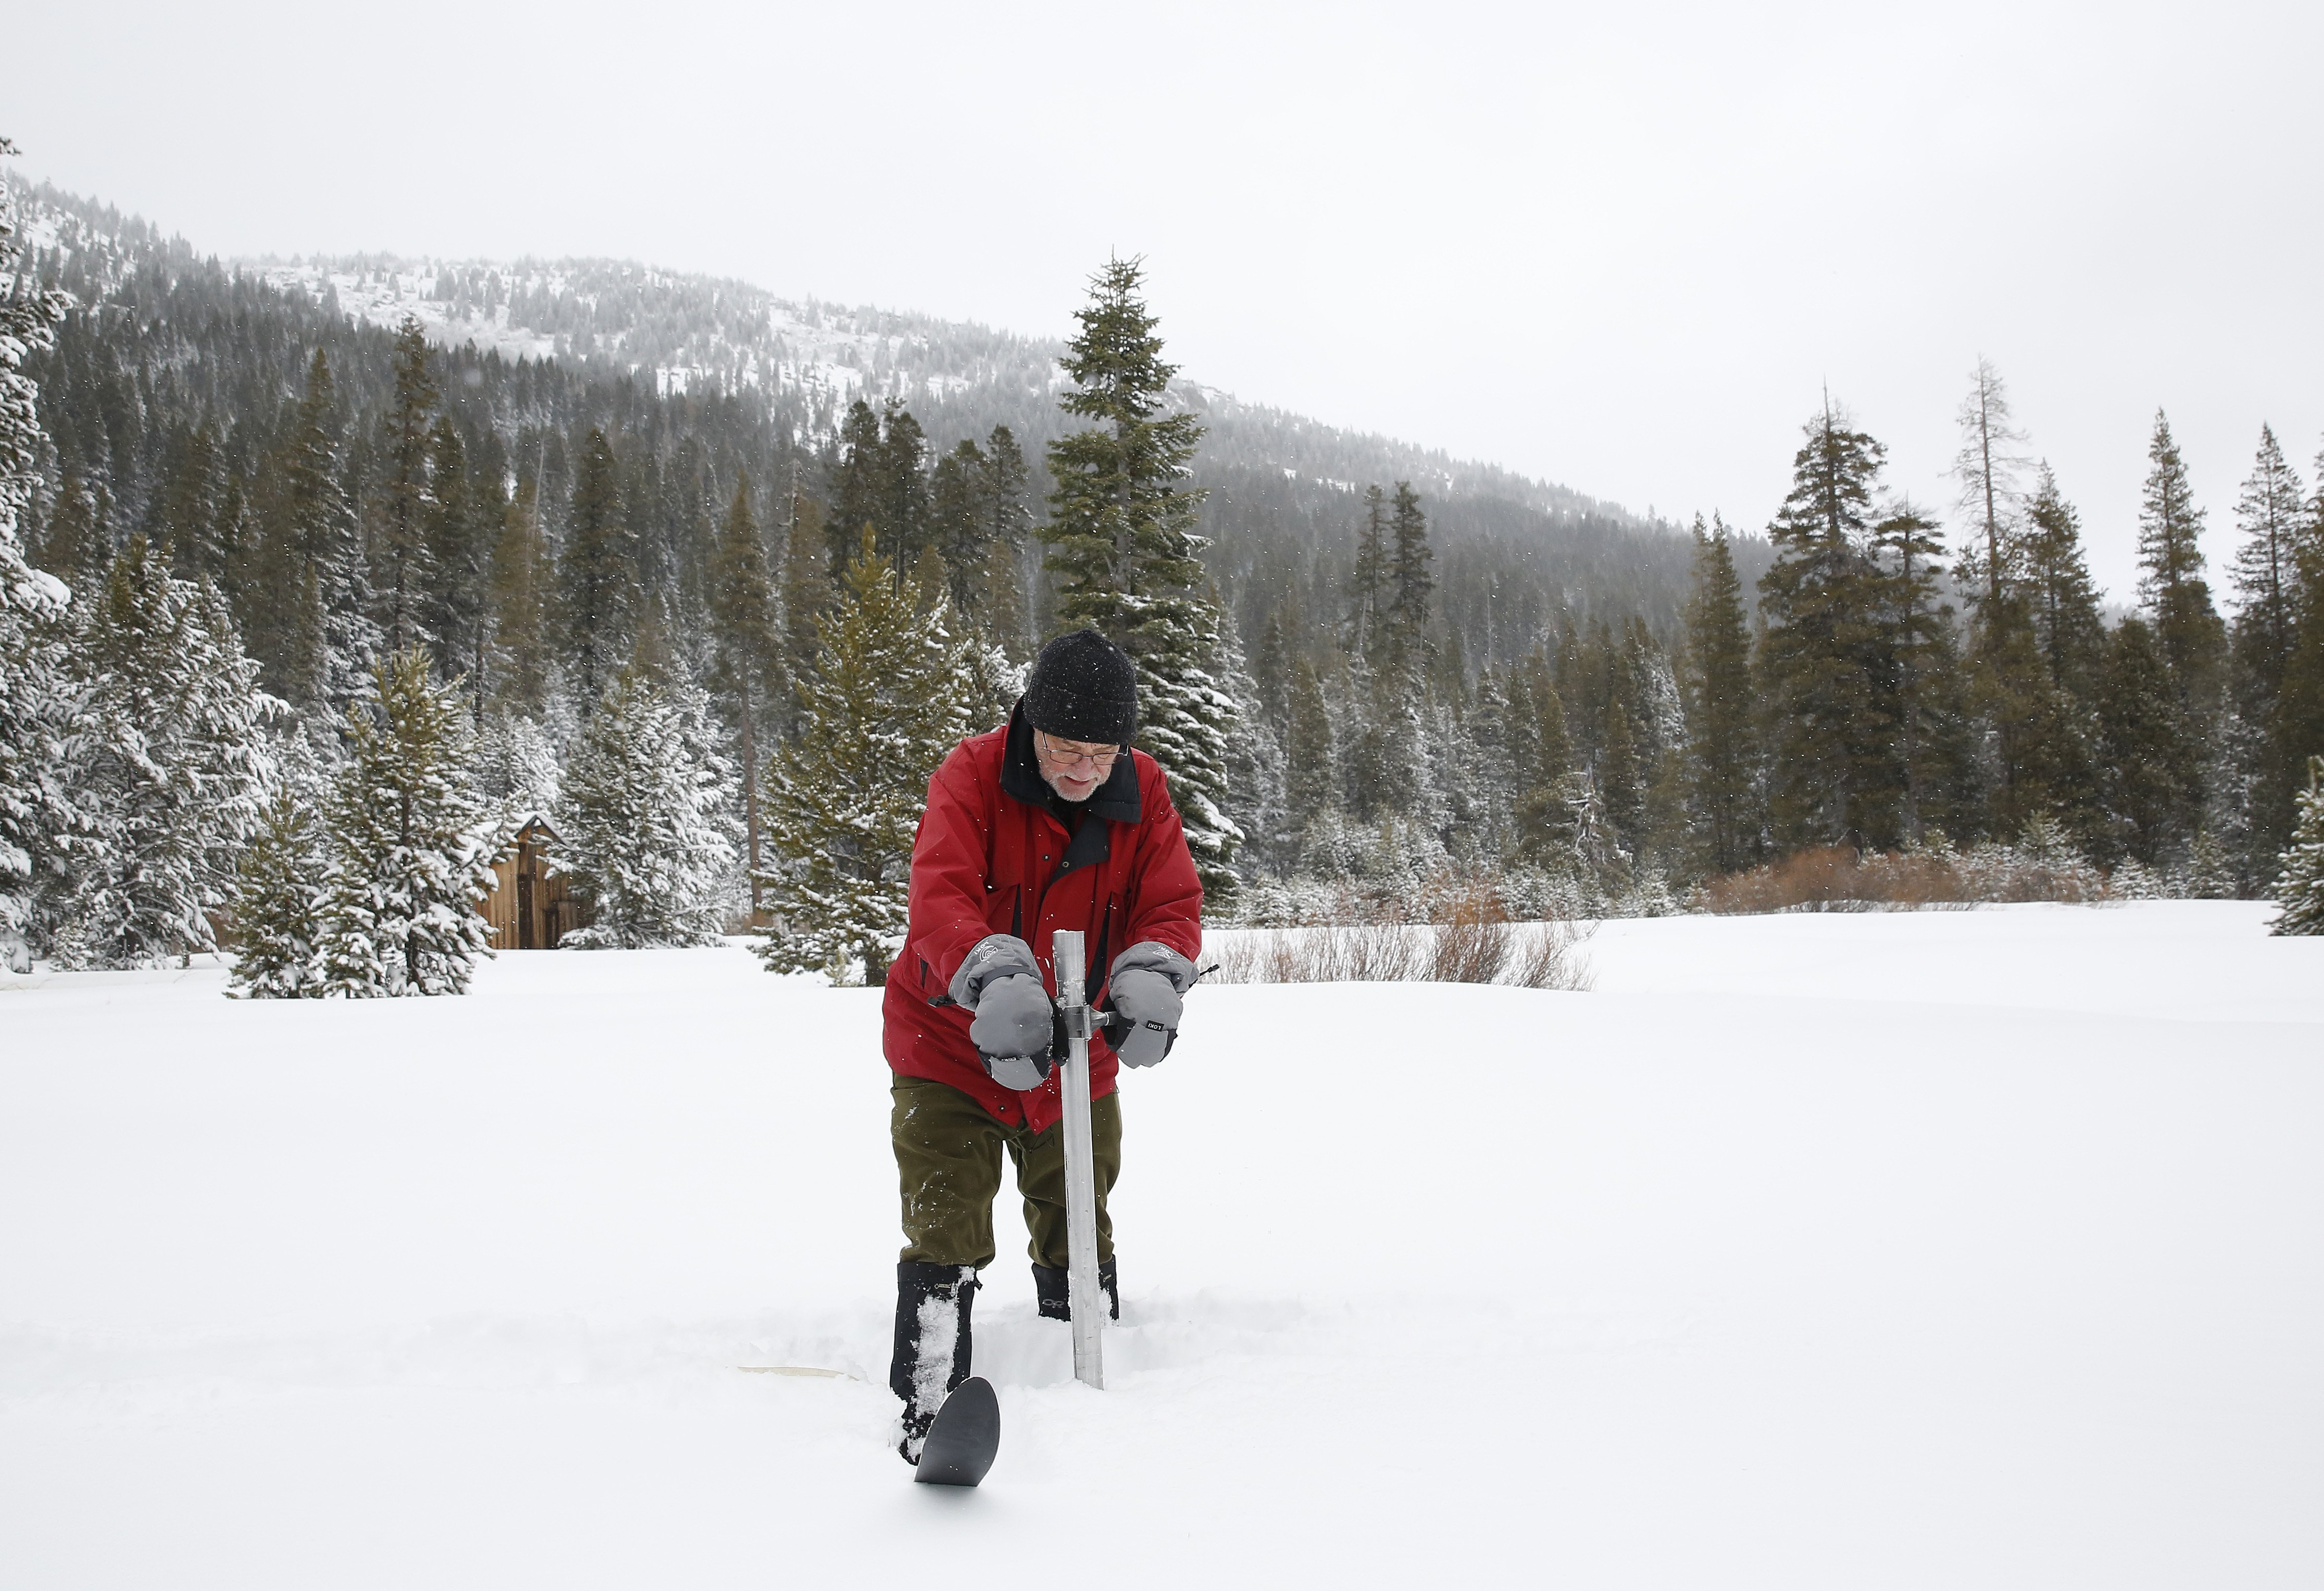 Frank Gehrke, chief of the California Cooperative Snow Surveys Program for the Department of Water Resources, plunges the survey tube into the snowpack as he conducts the first snow survey of the season at Phillips Station near Echo Summit, CA, on Jan. 3, 2017.